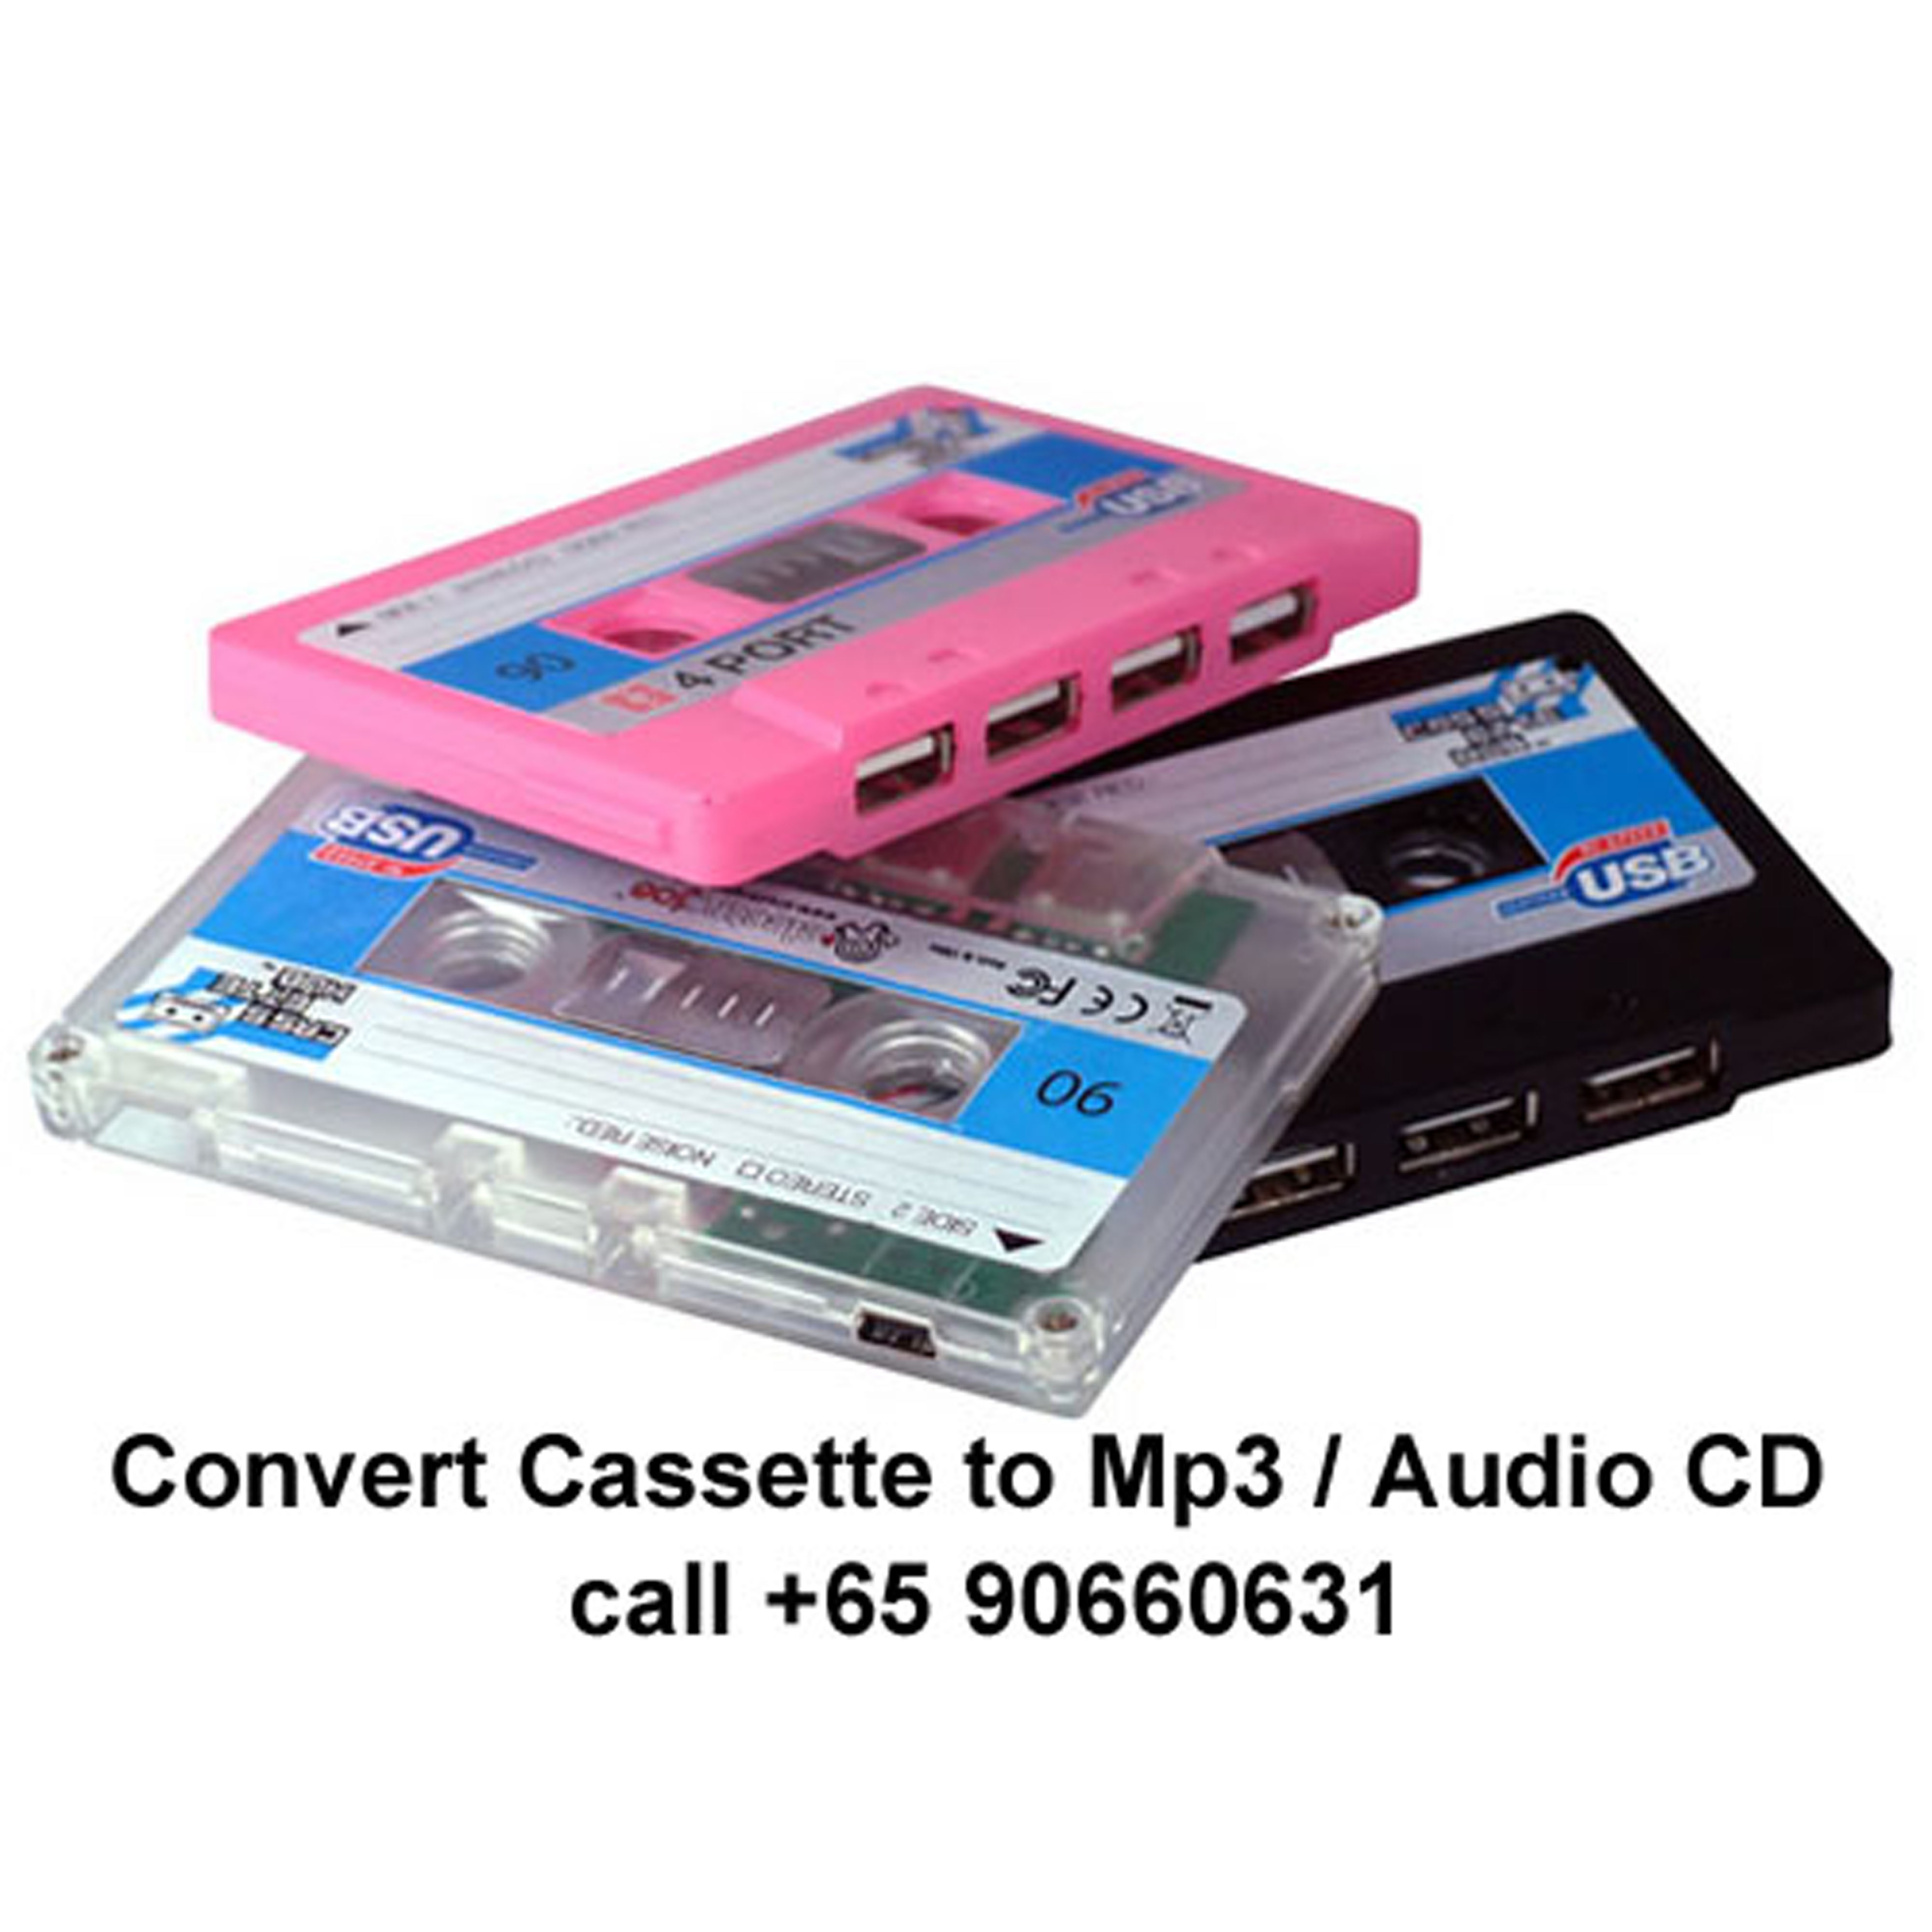 Convert Cassette tape to MP3/Audio CD – call 90660631